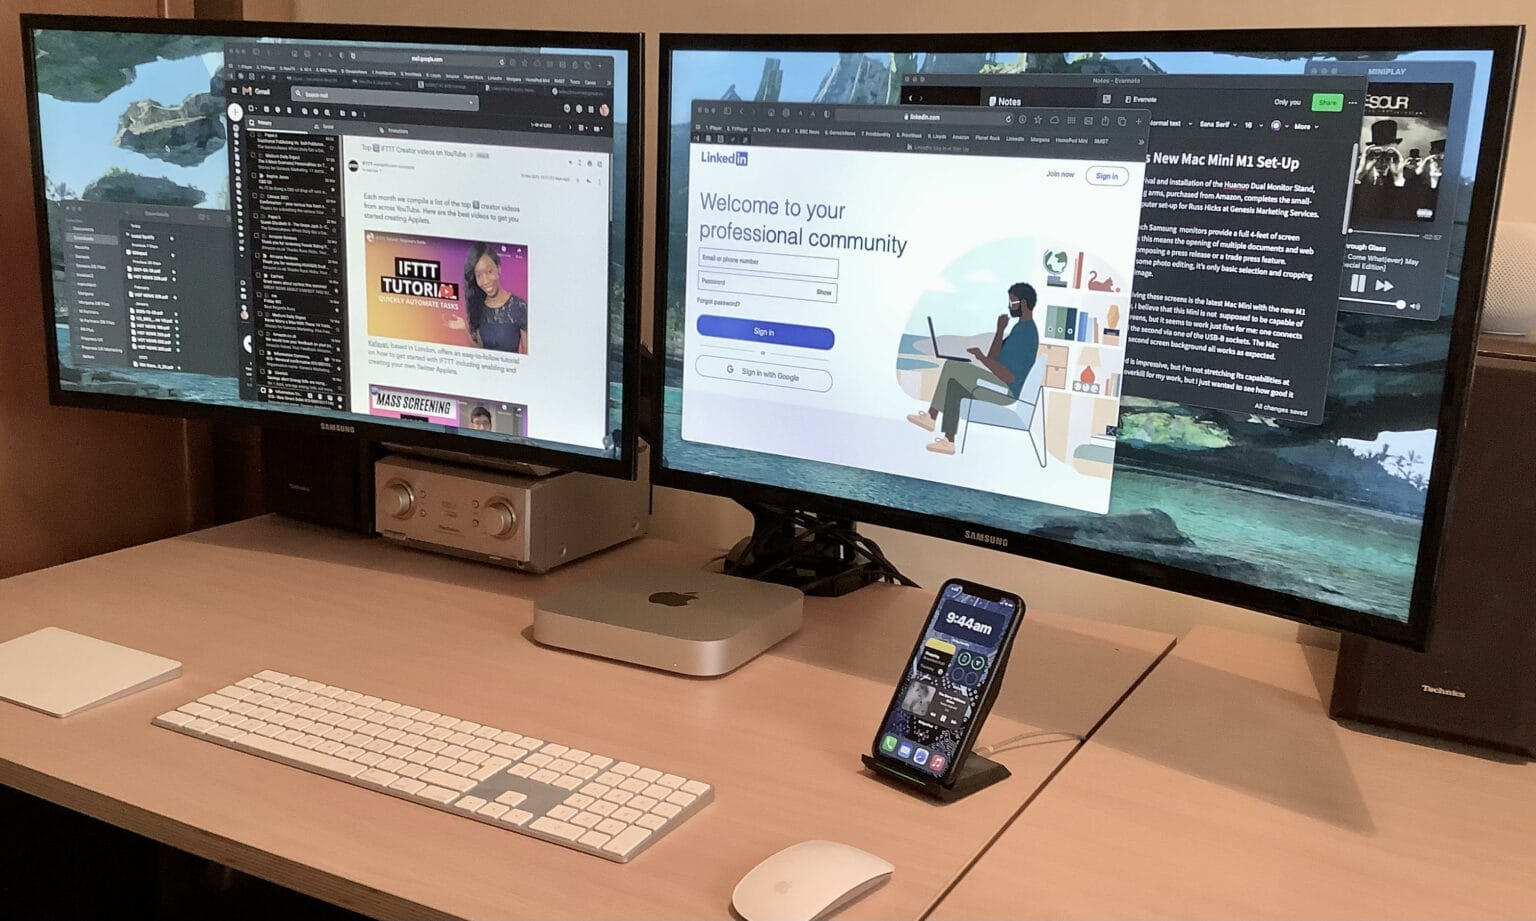 Dual curved displays and Apple keyboard, trackpad and mouse make the setup for Russ Hicks.